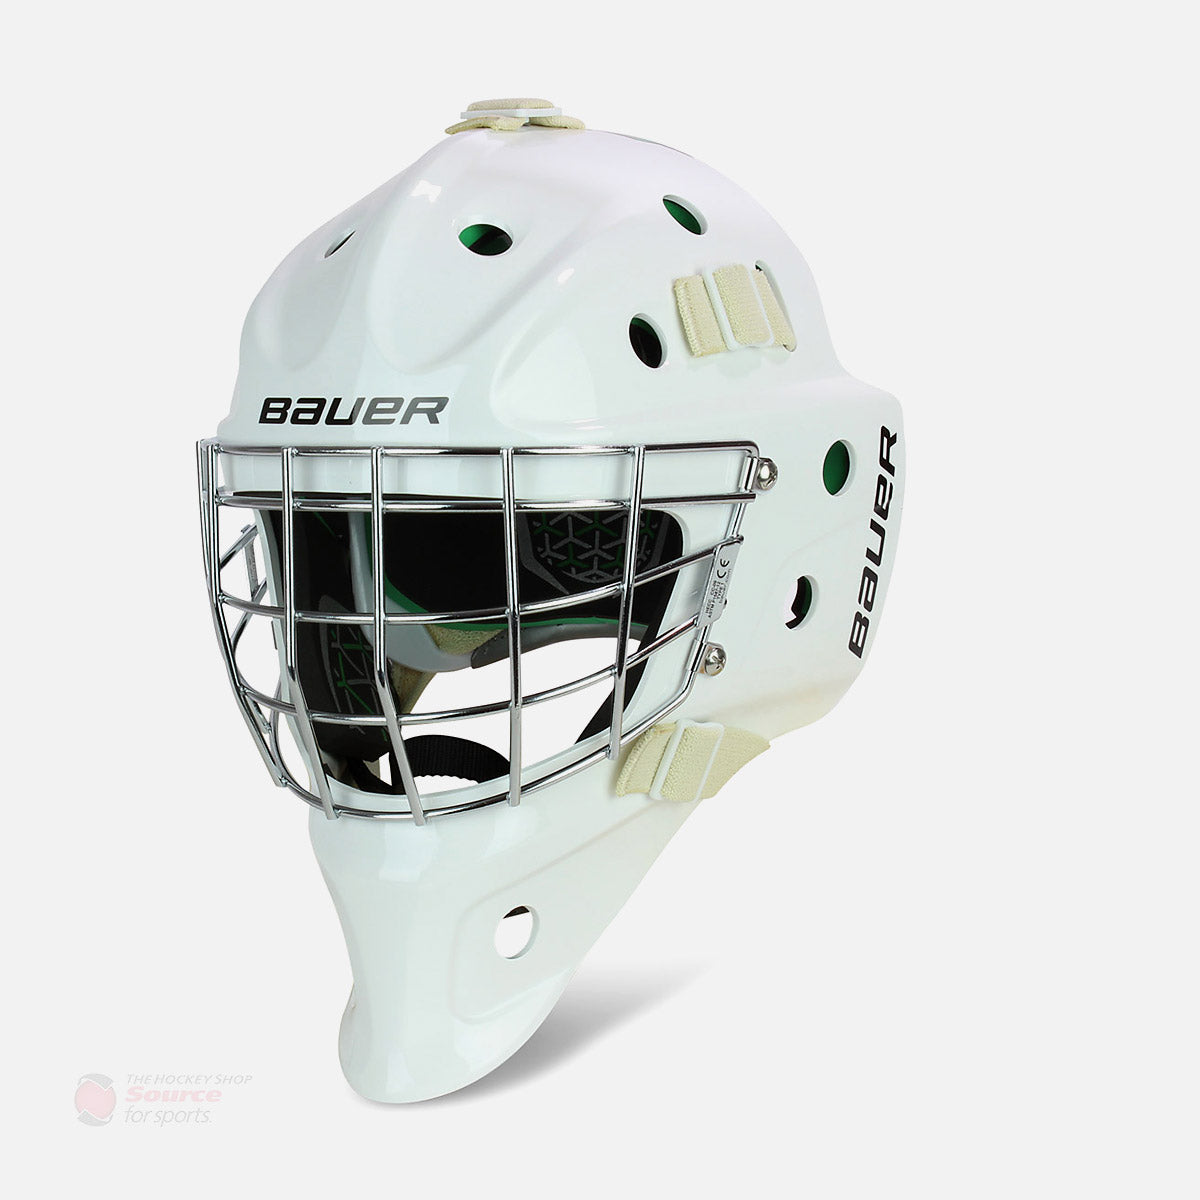 a97484a45e7 Bauer NME 4 Junior Goalie Mask - White – The Hockey Shop Source For ...